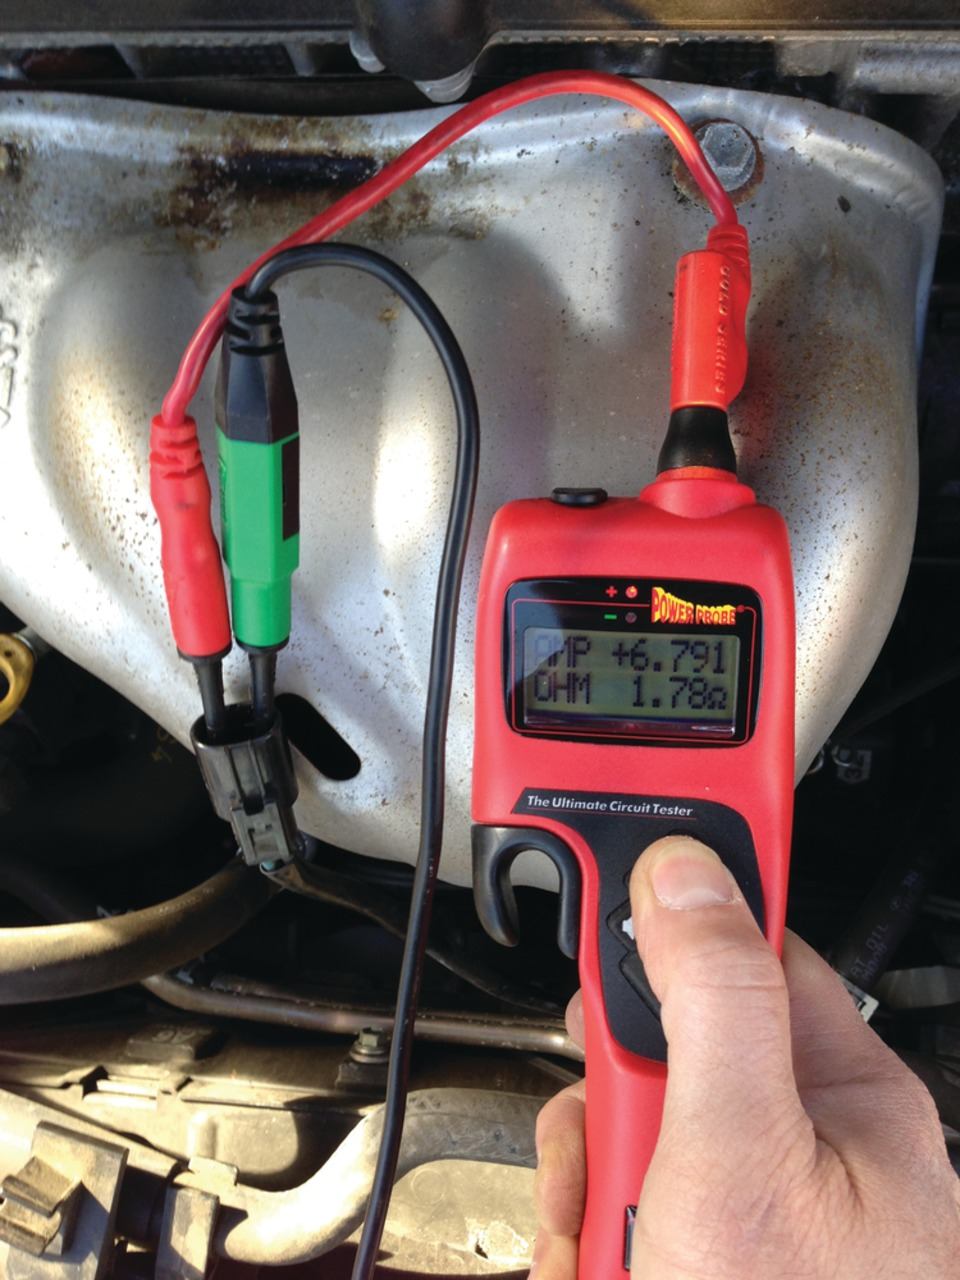 hight resolution of matco recommends coupling its tp3405 leak detection dye with its rpt102 cooling system pressure tester when under pressure dye may be left behind where a